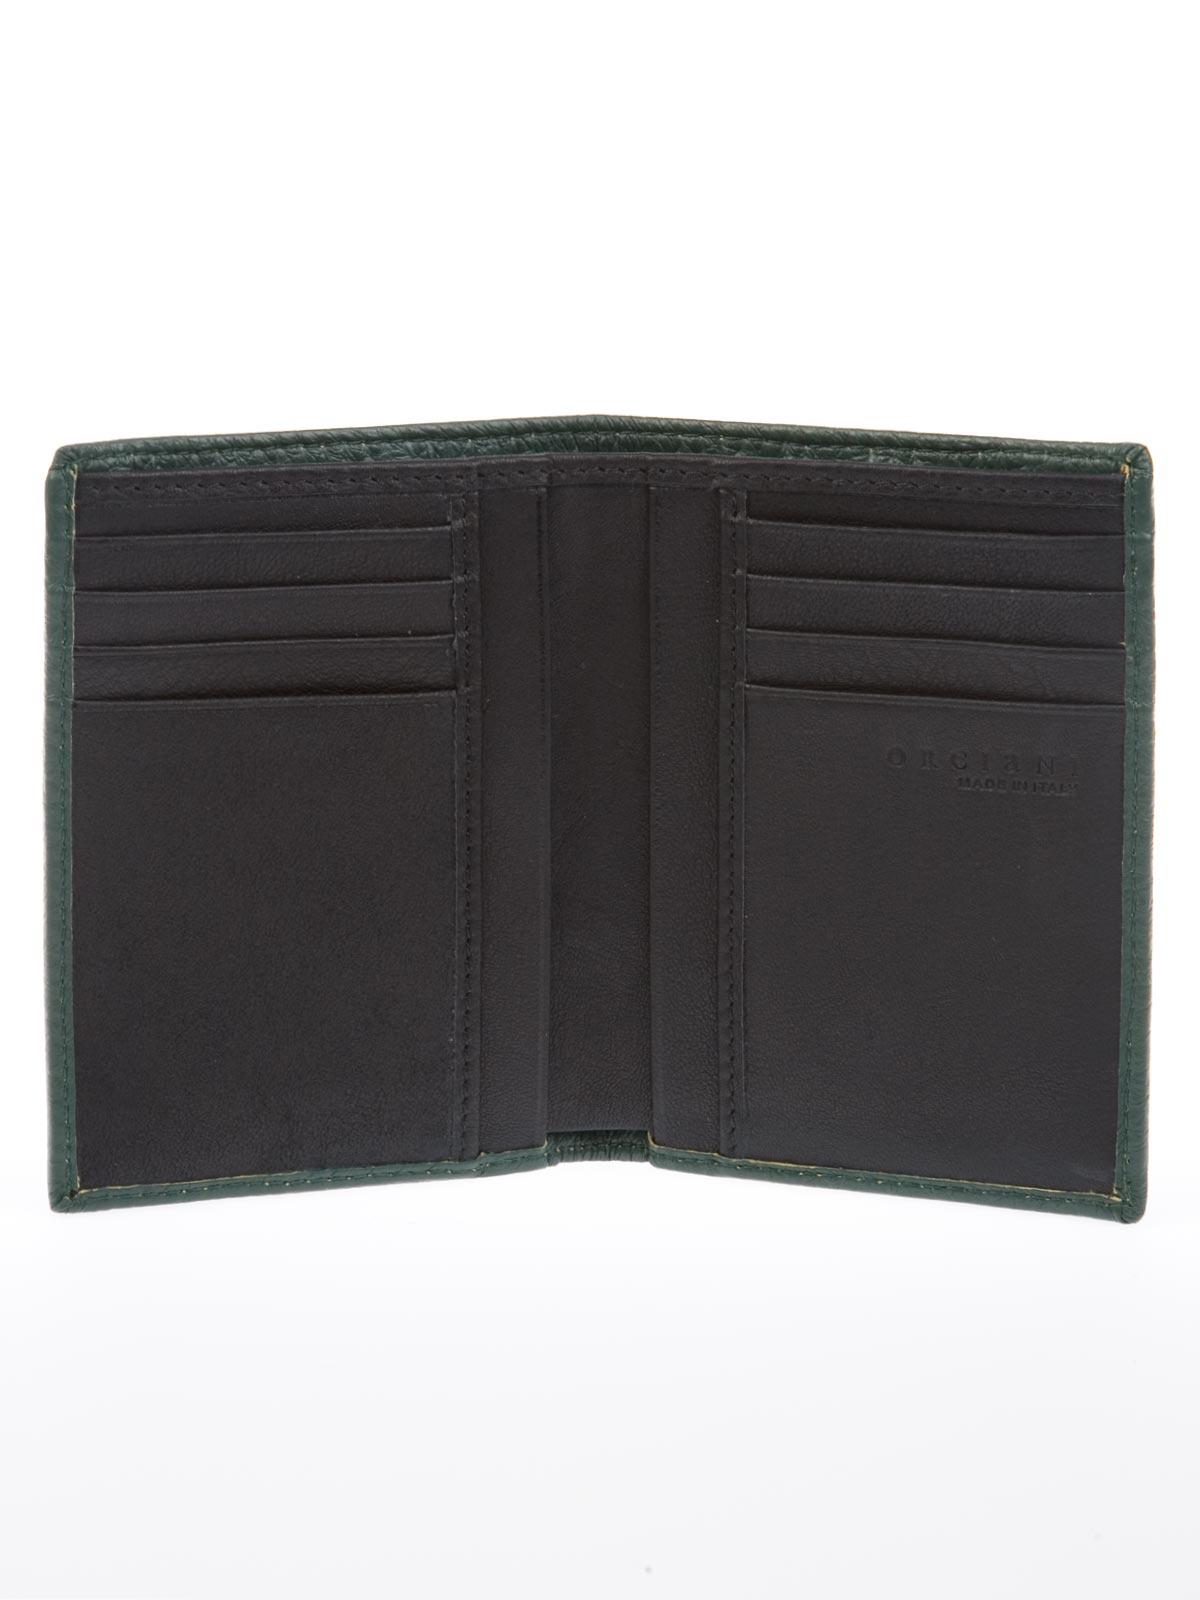 Small Leather Goods - Wallets Orciani 3VUvE